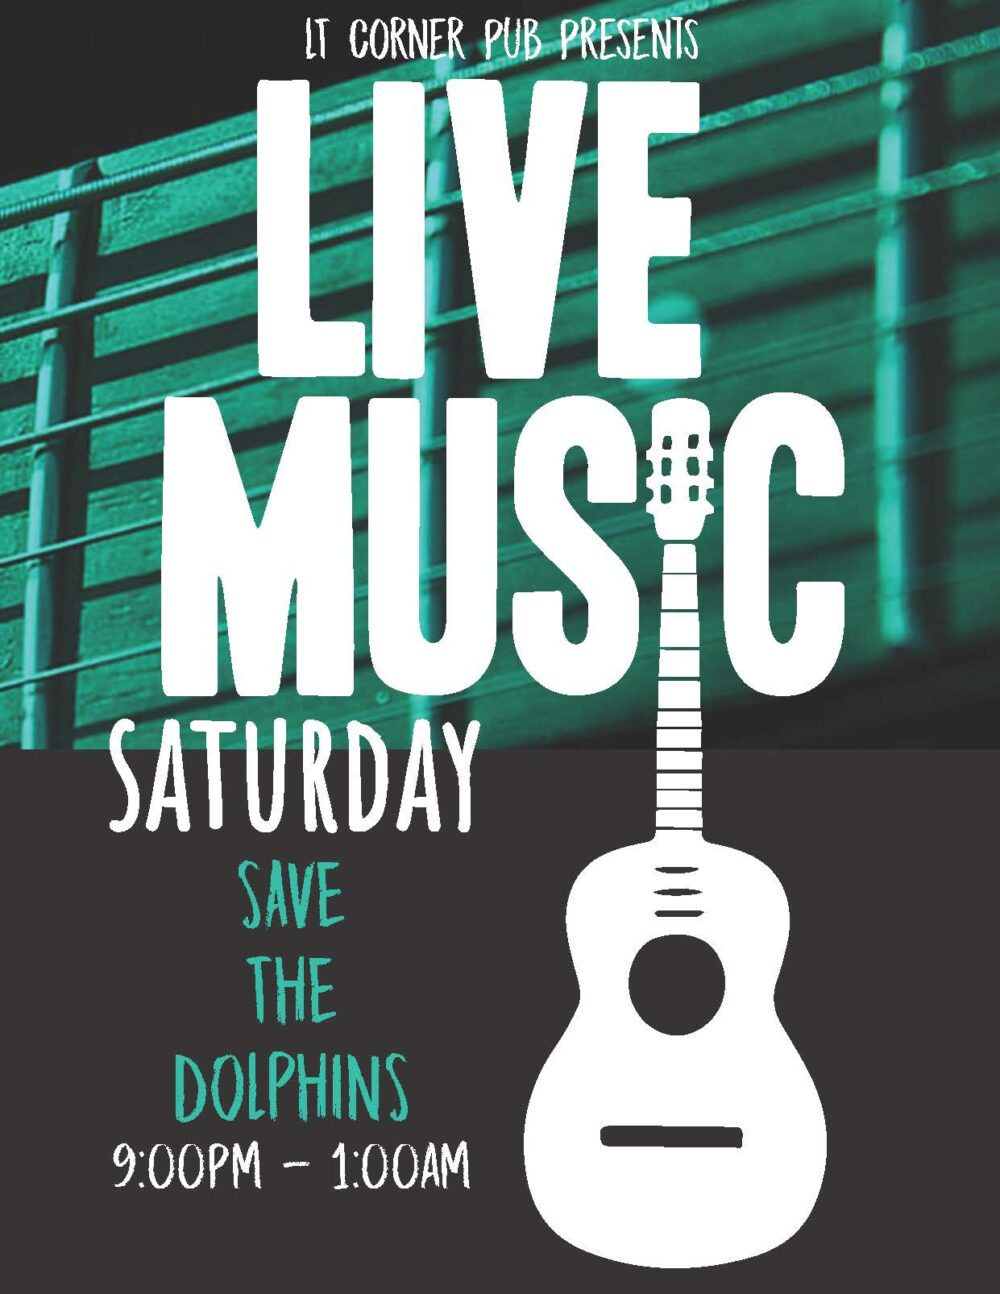 Live Music Saturday with Save The Dolphins